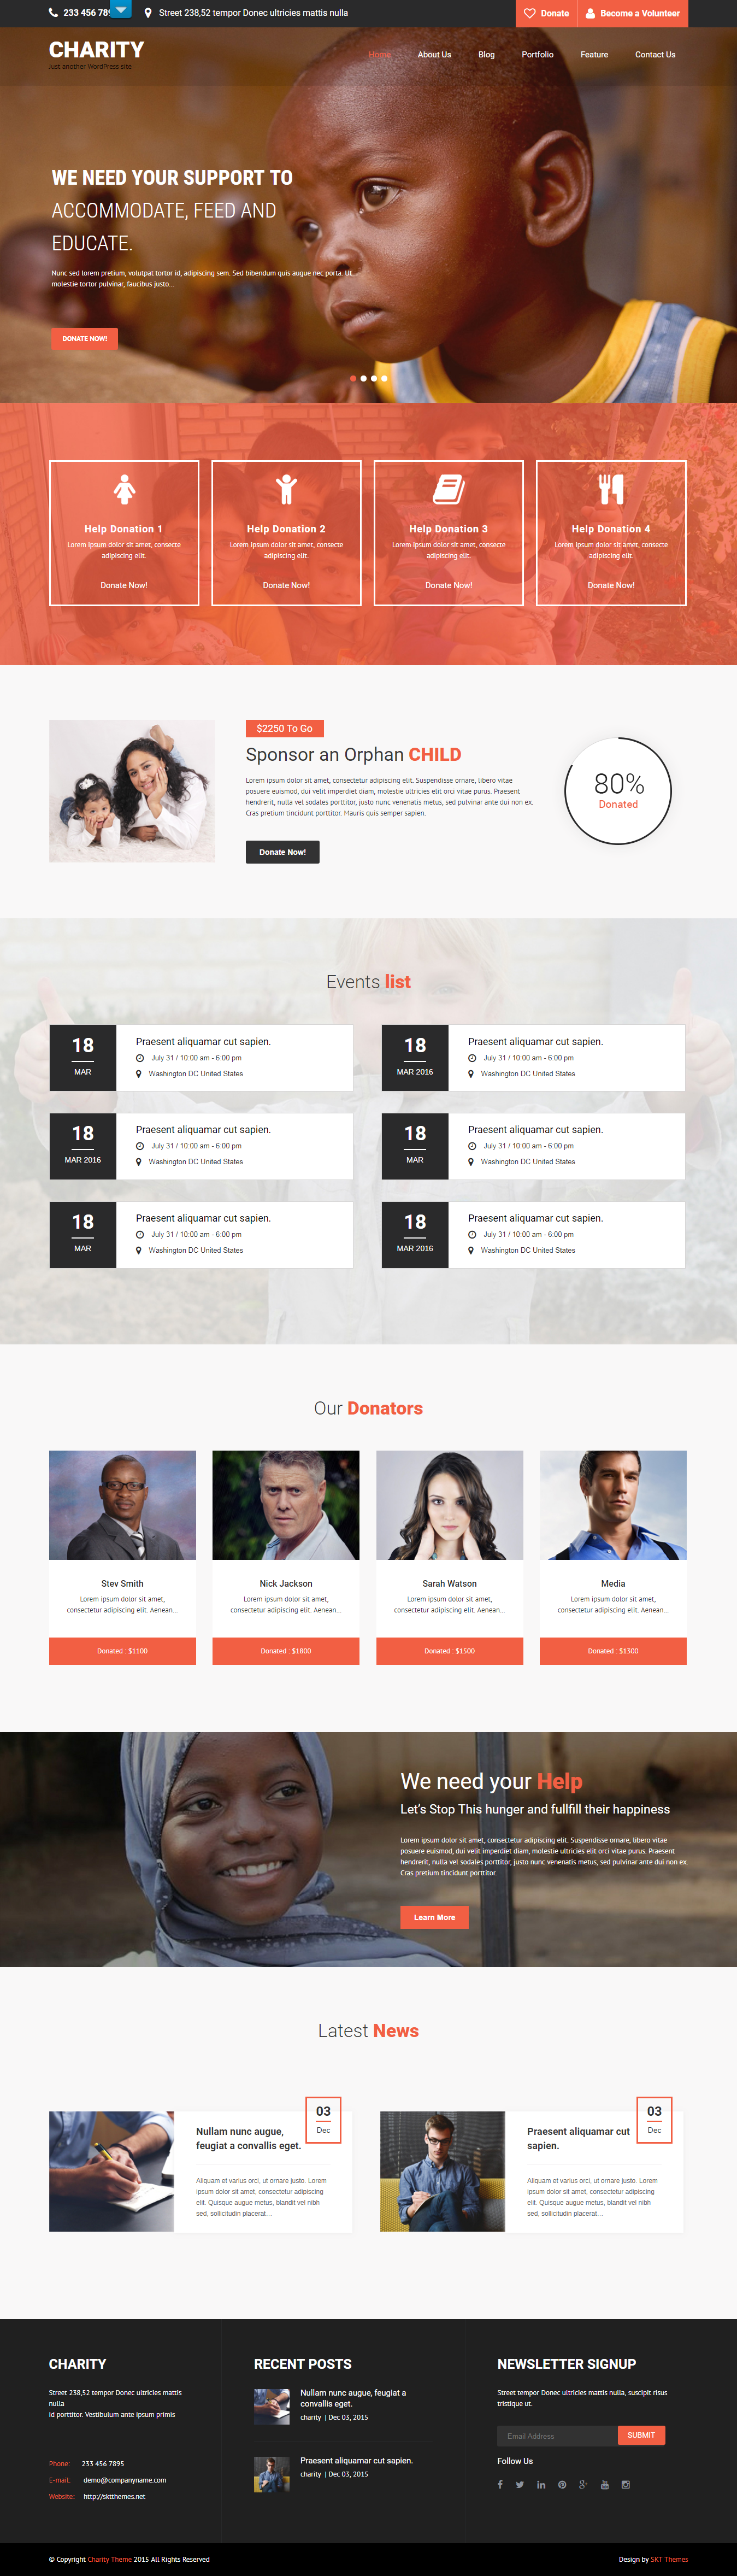 skt charity best free church wordpress theme - 10+ Best Free WordPress Church Themes